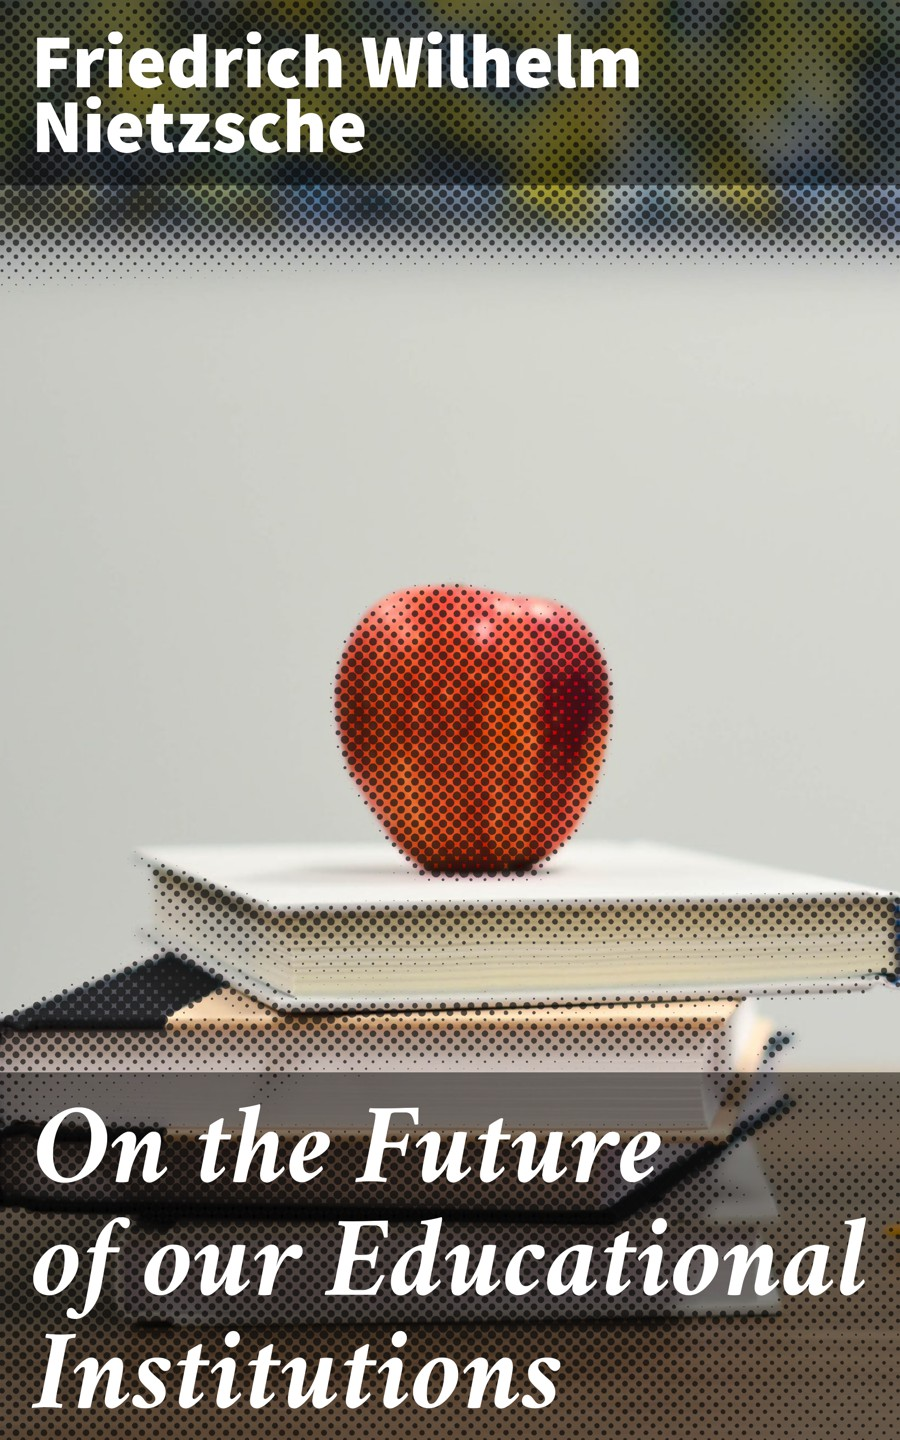 Friedrich Wilhelm Nietzsche On the Future of our Educational Institutions